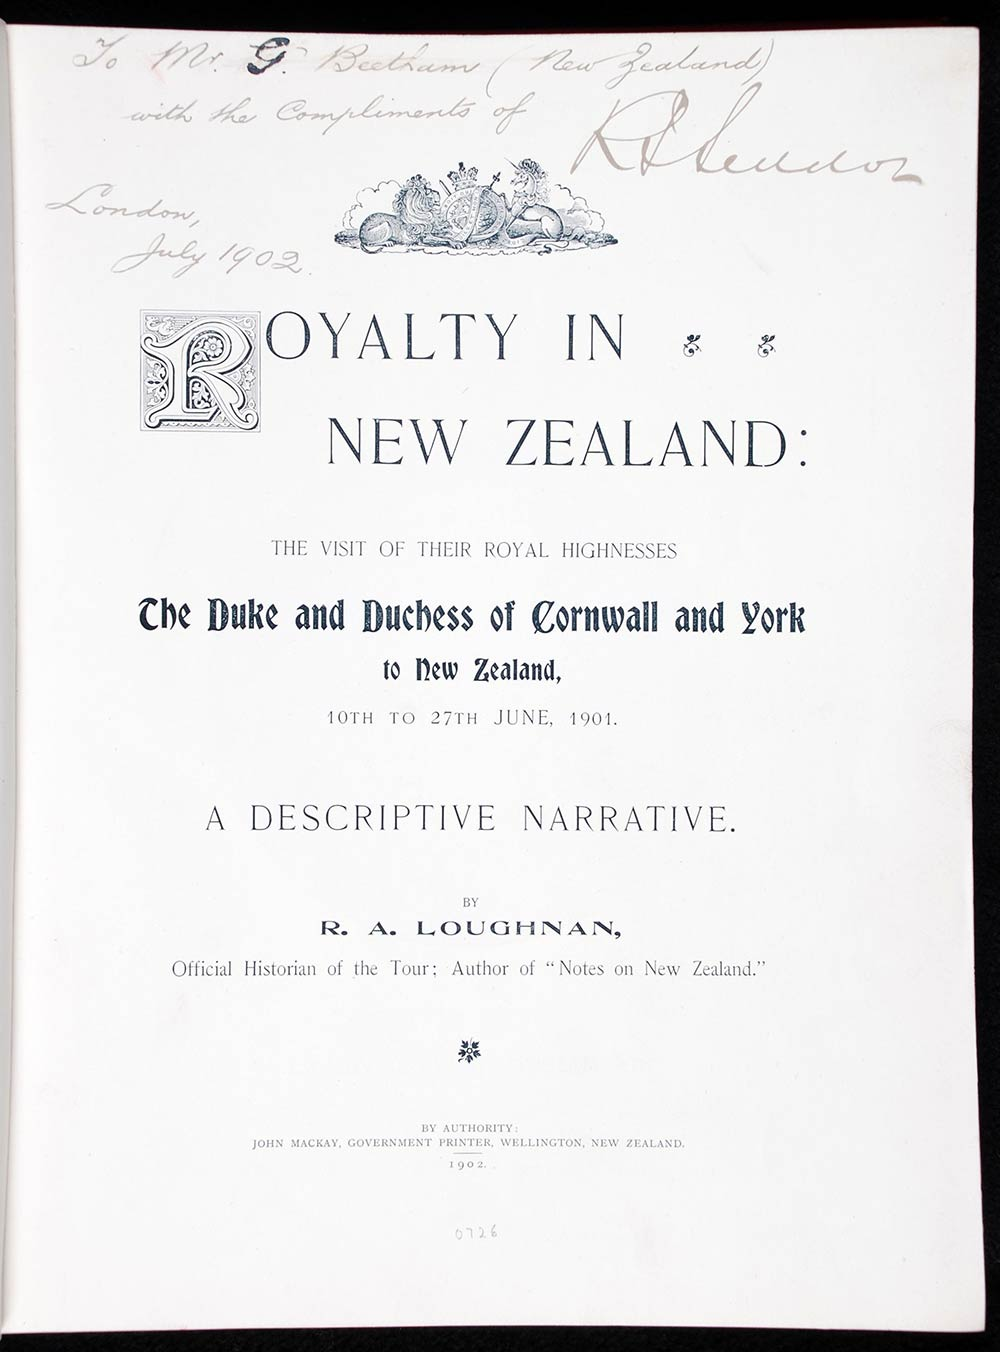 R.A. Loughnan. <em>Royalty in New Zealand: the visit of their Royal Highnesses the Duke and Duchess of Cornwall and York to New Zealand, 10th to 27th June, 1901: a descriptive narrative.</em> Wellington: John MacKay, Government Printer, 1902.